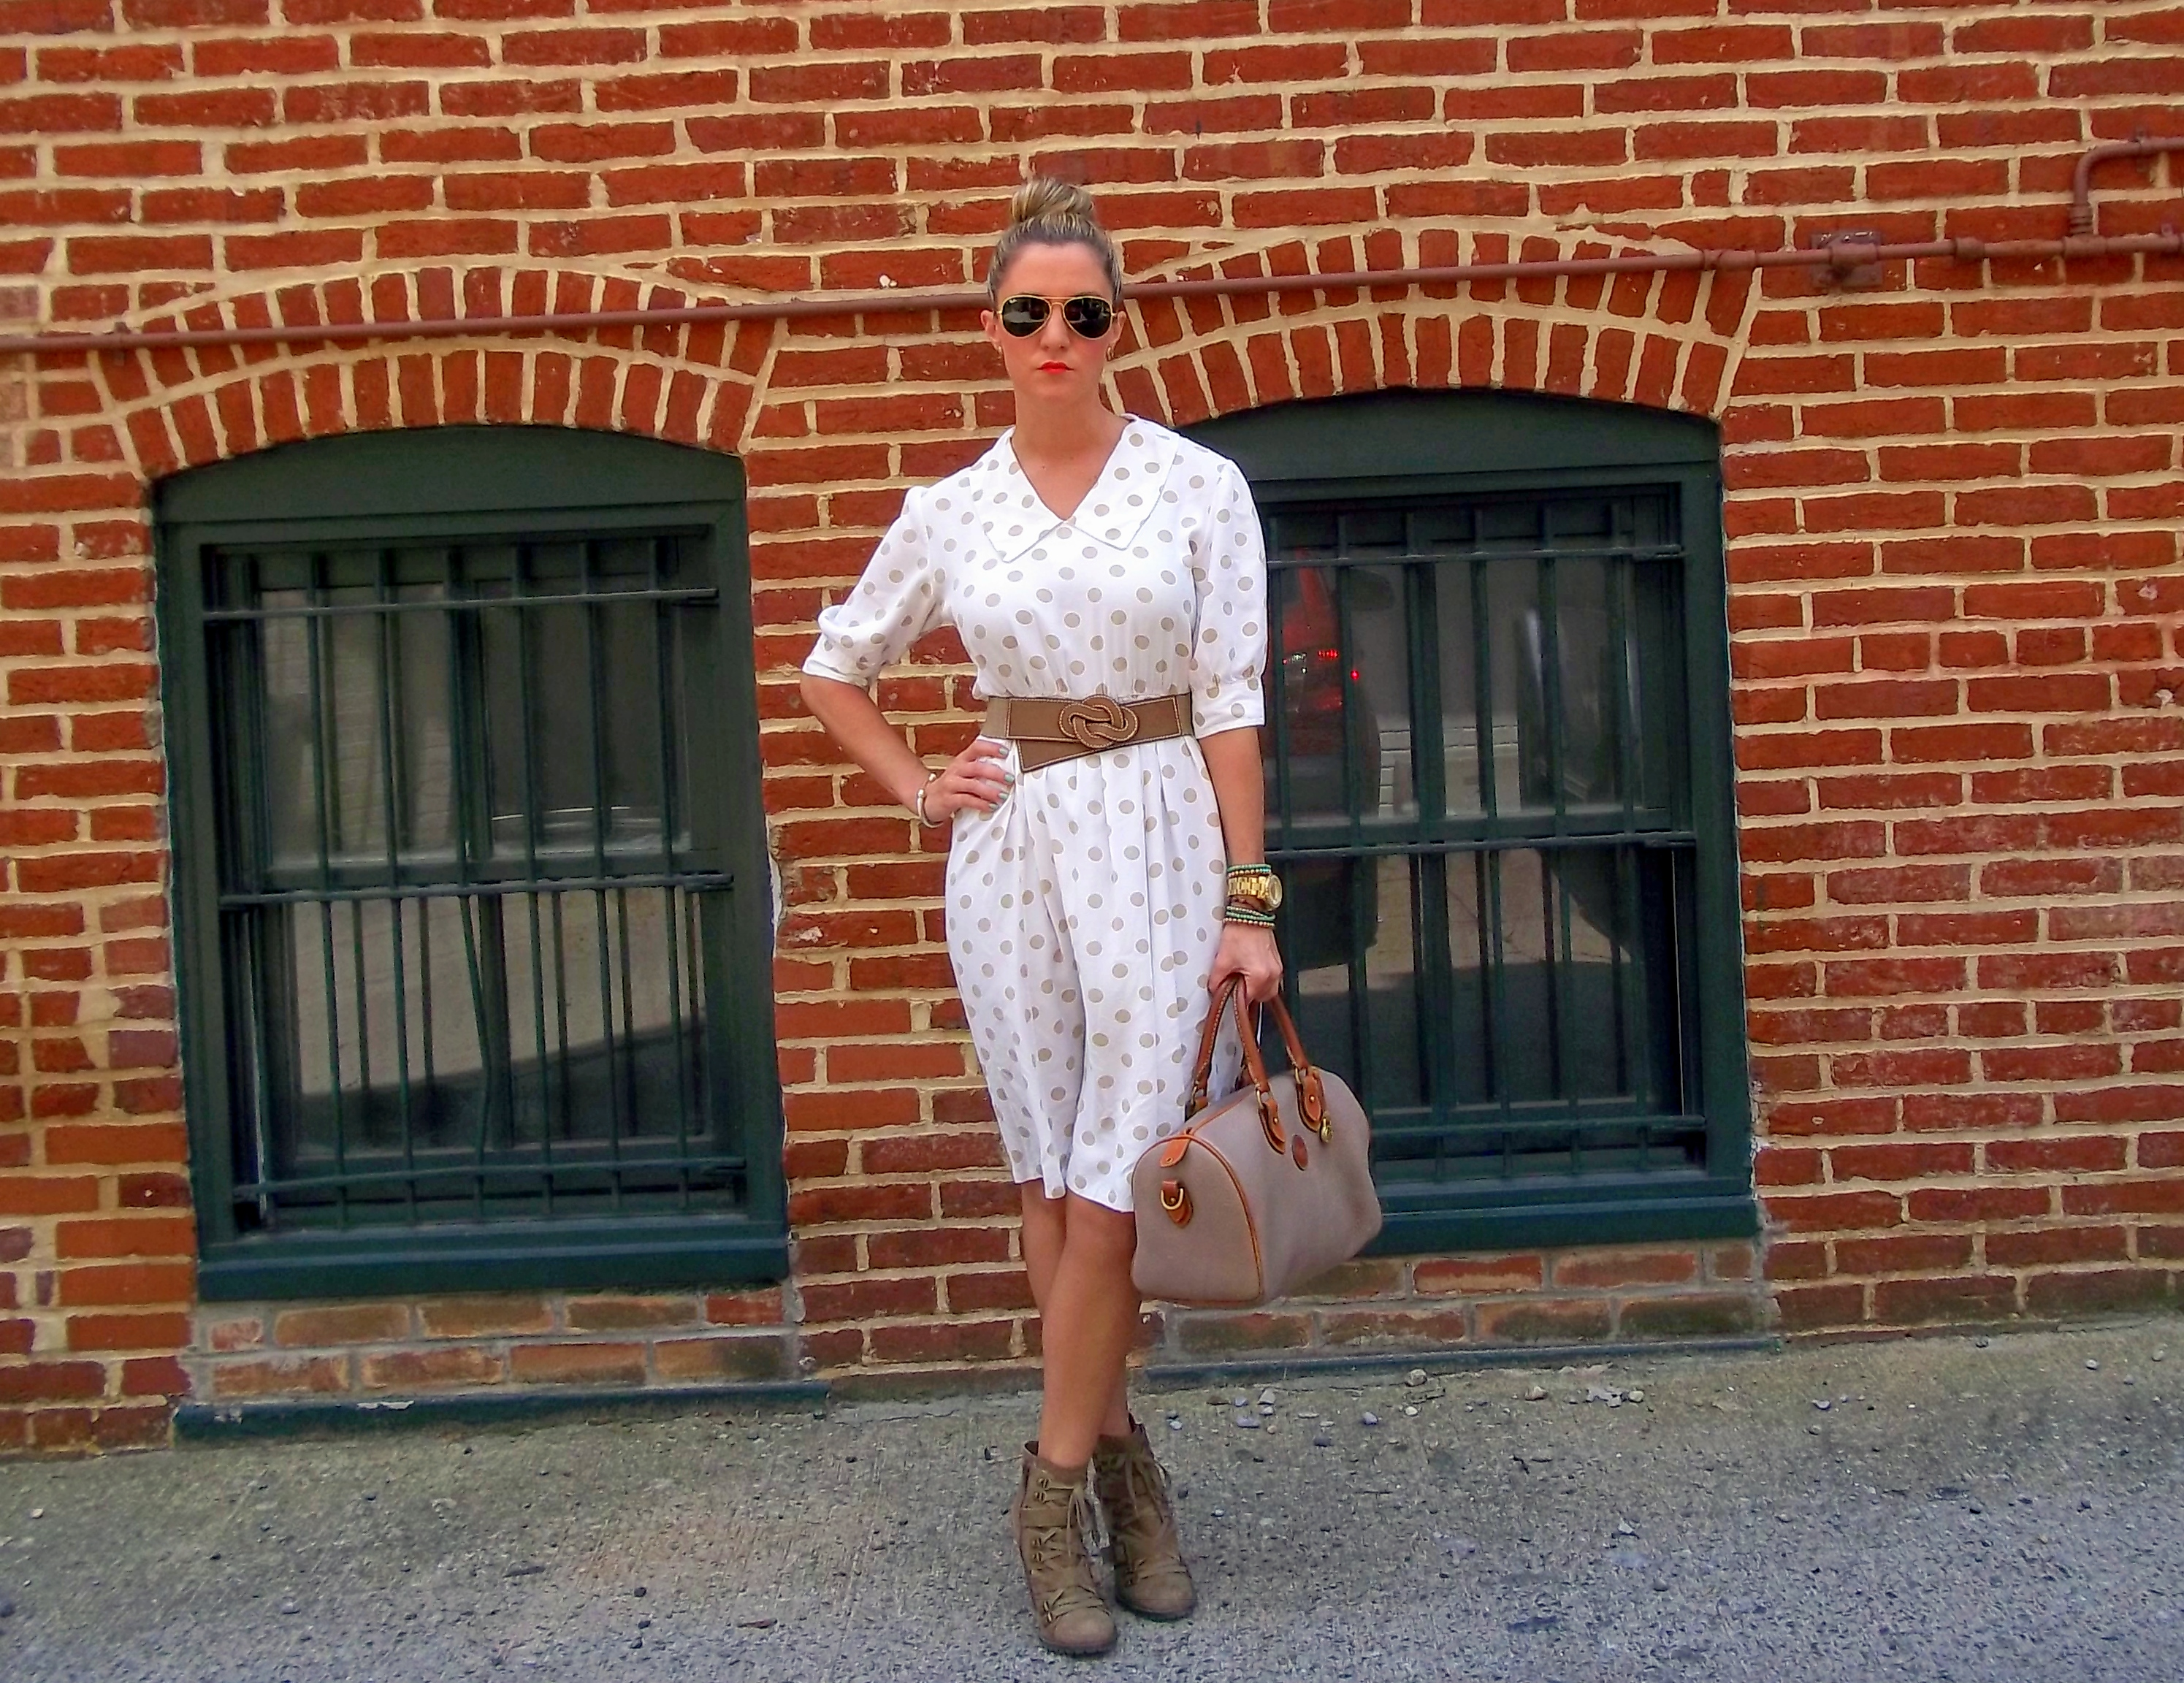 c5a46531ec10 Lacey s Wearing  Polka Dots - A Lacey Perspective DC Fashion Blog